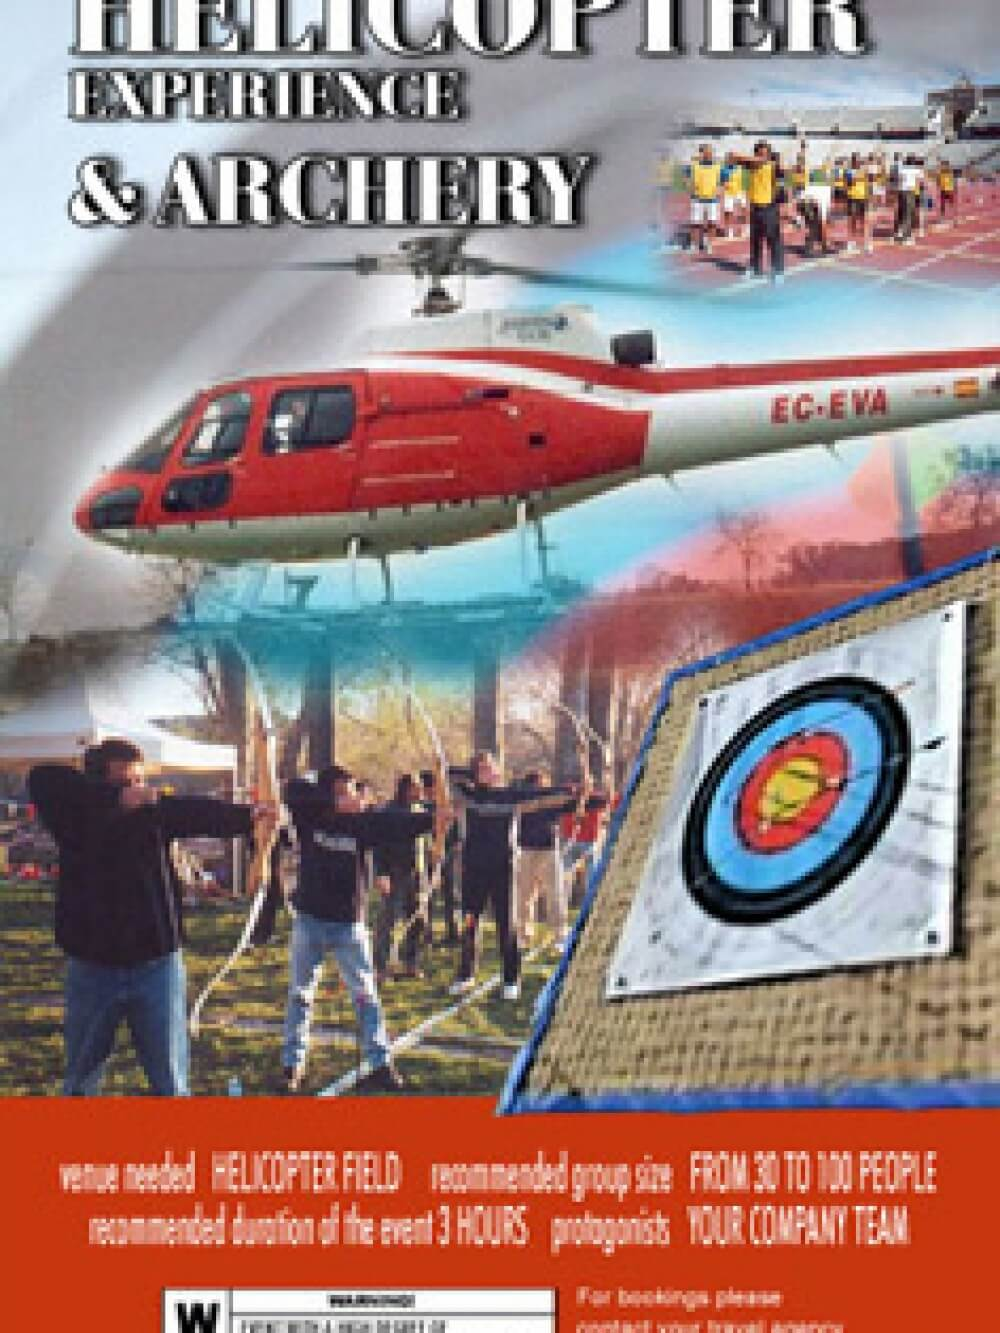 helicopter_experience_and_archery_vertical_web